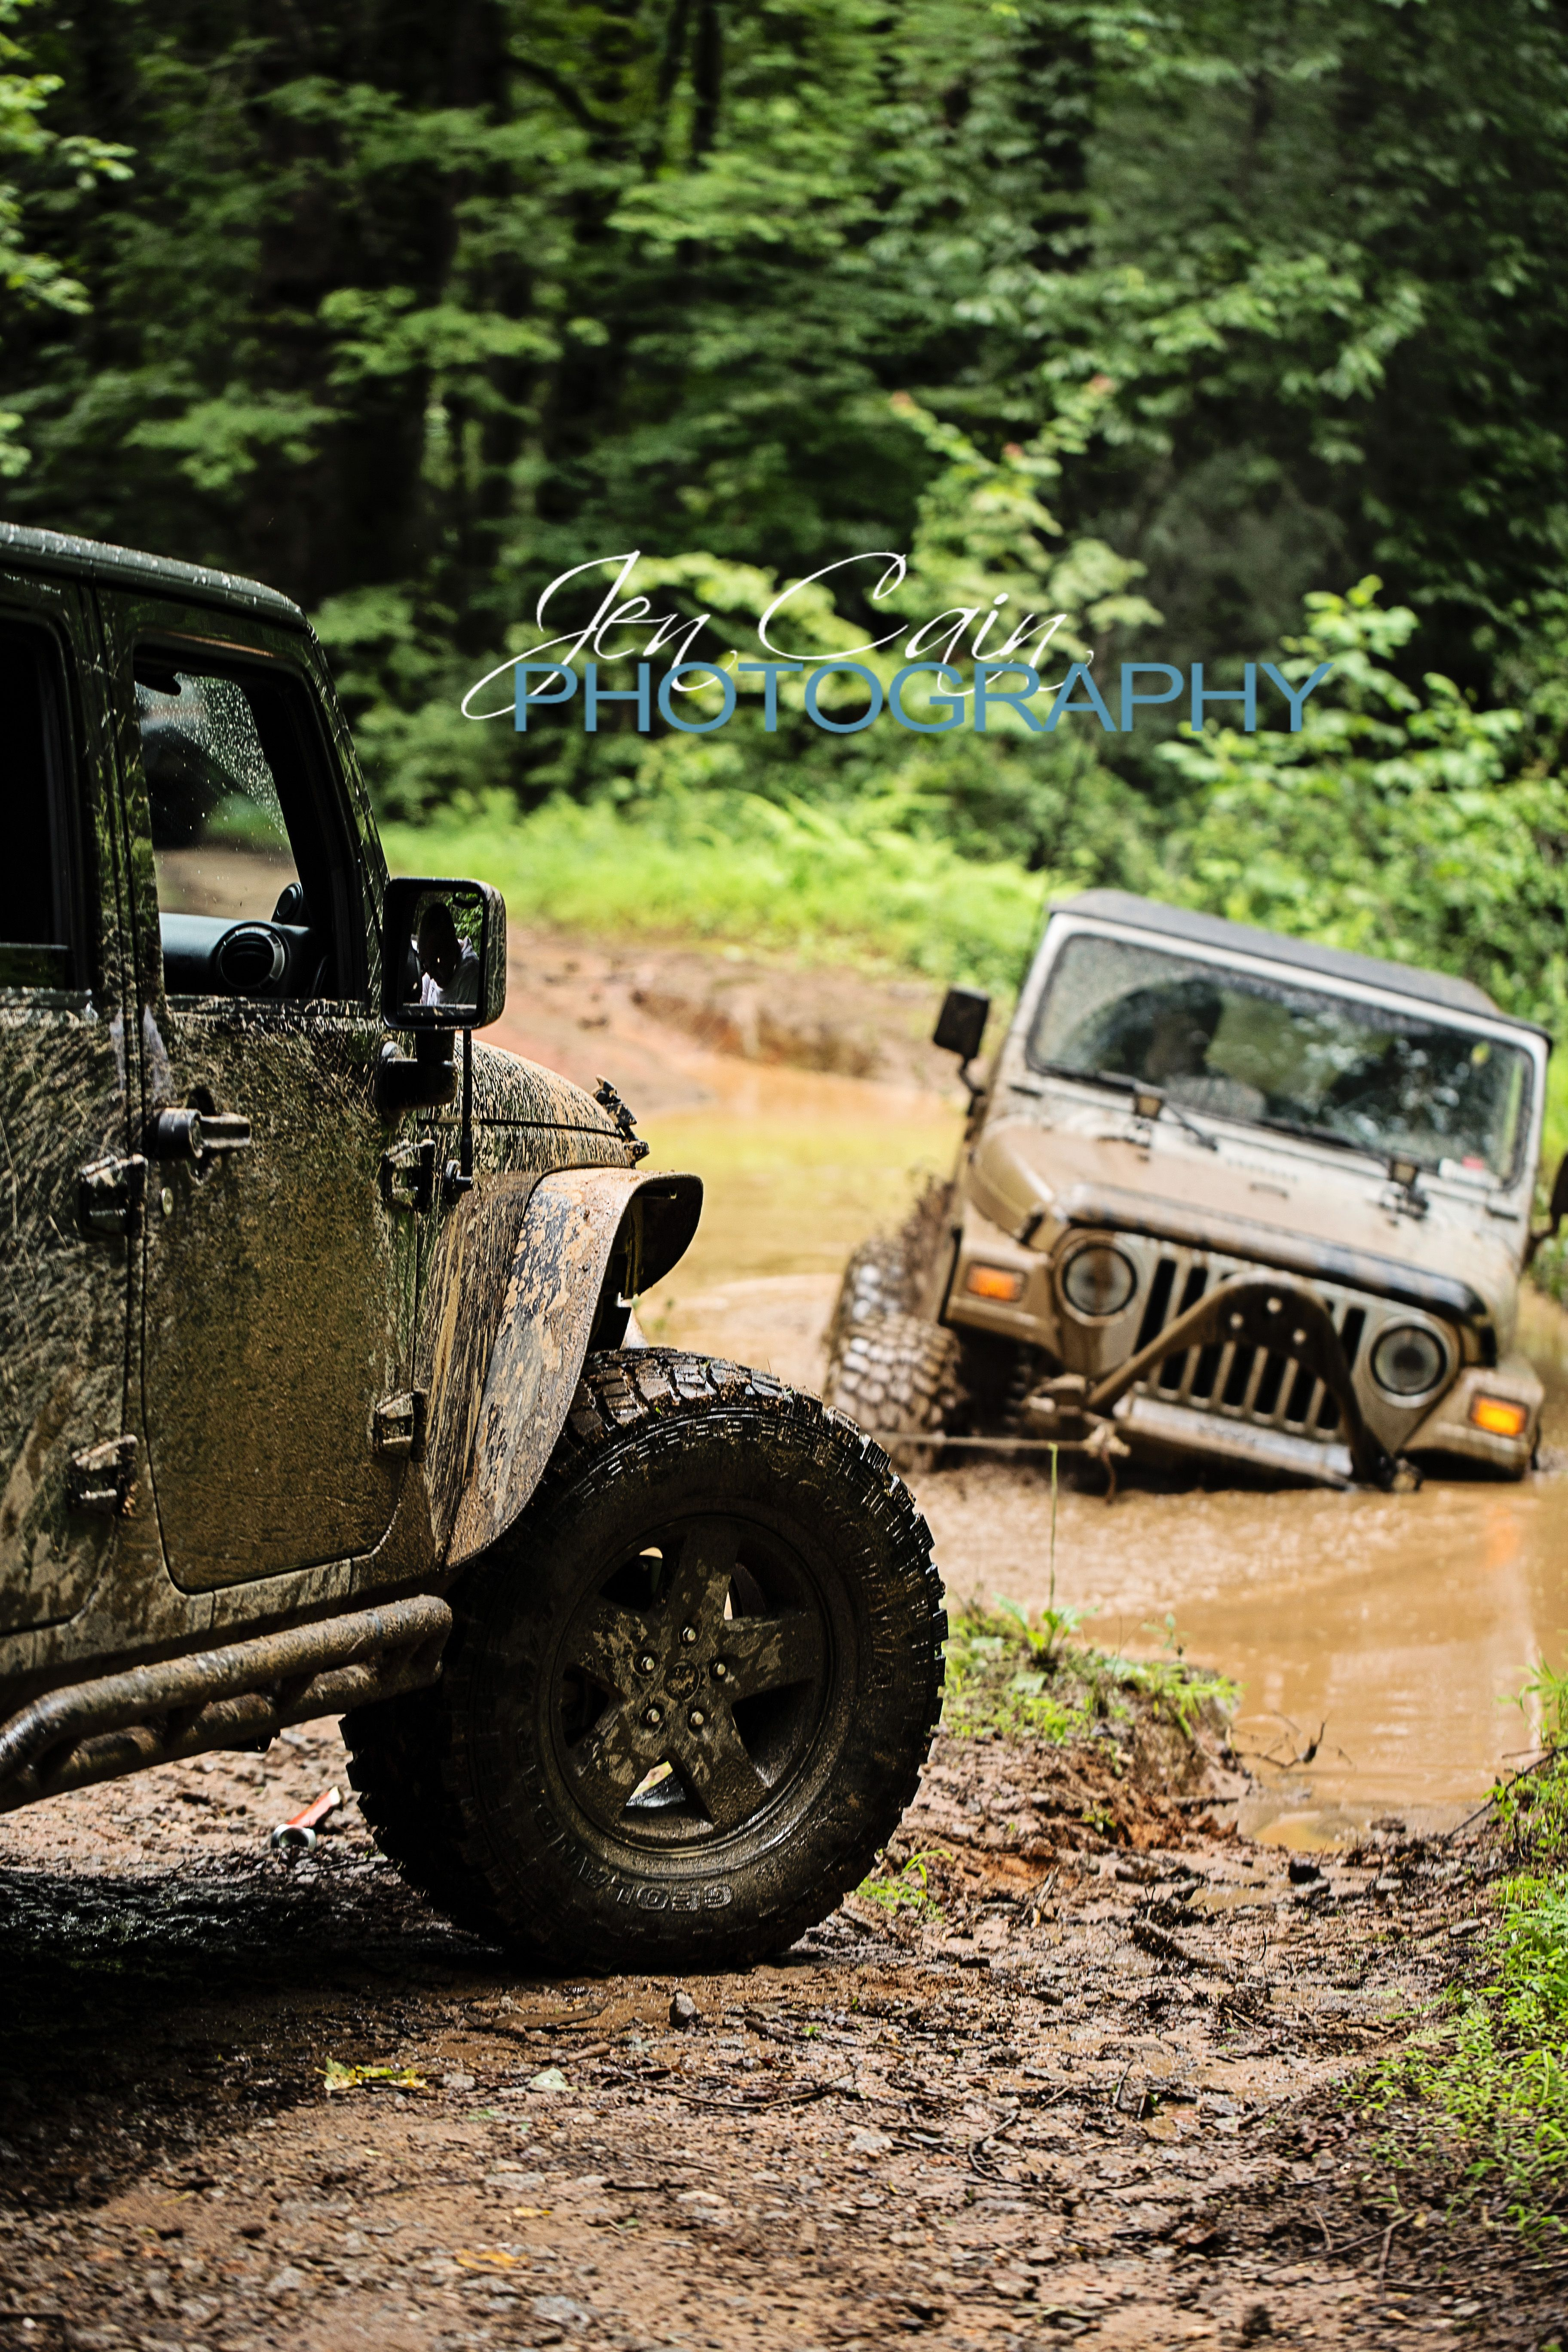 Pin By Abigail On Cars And Motorcycle Jeep Trails Offroad Jeep Ocean City Jeep Week